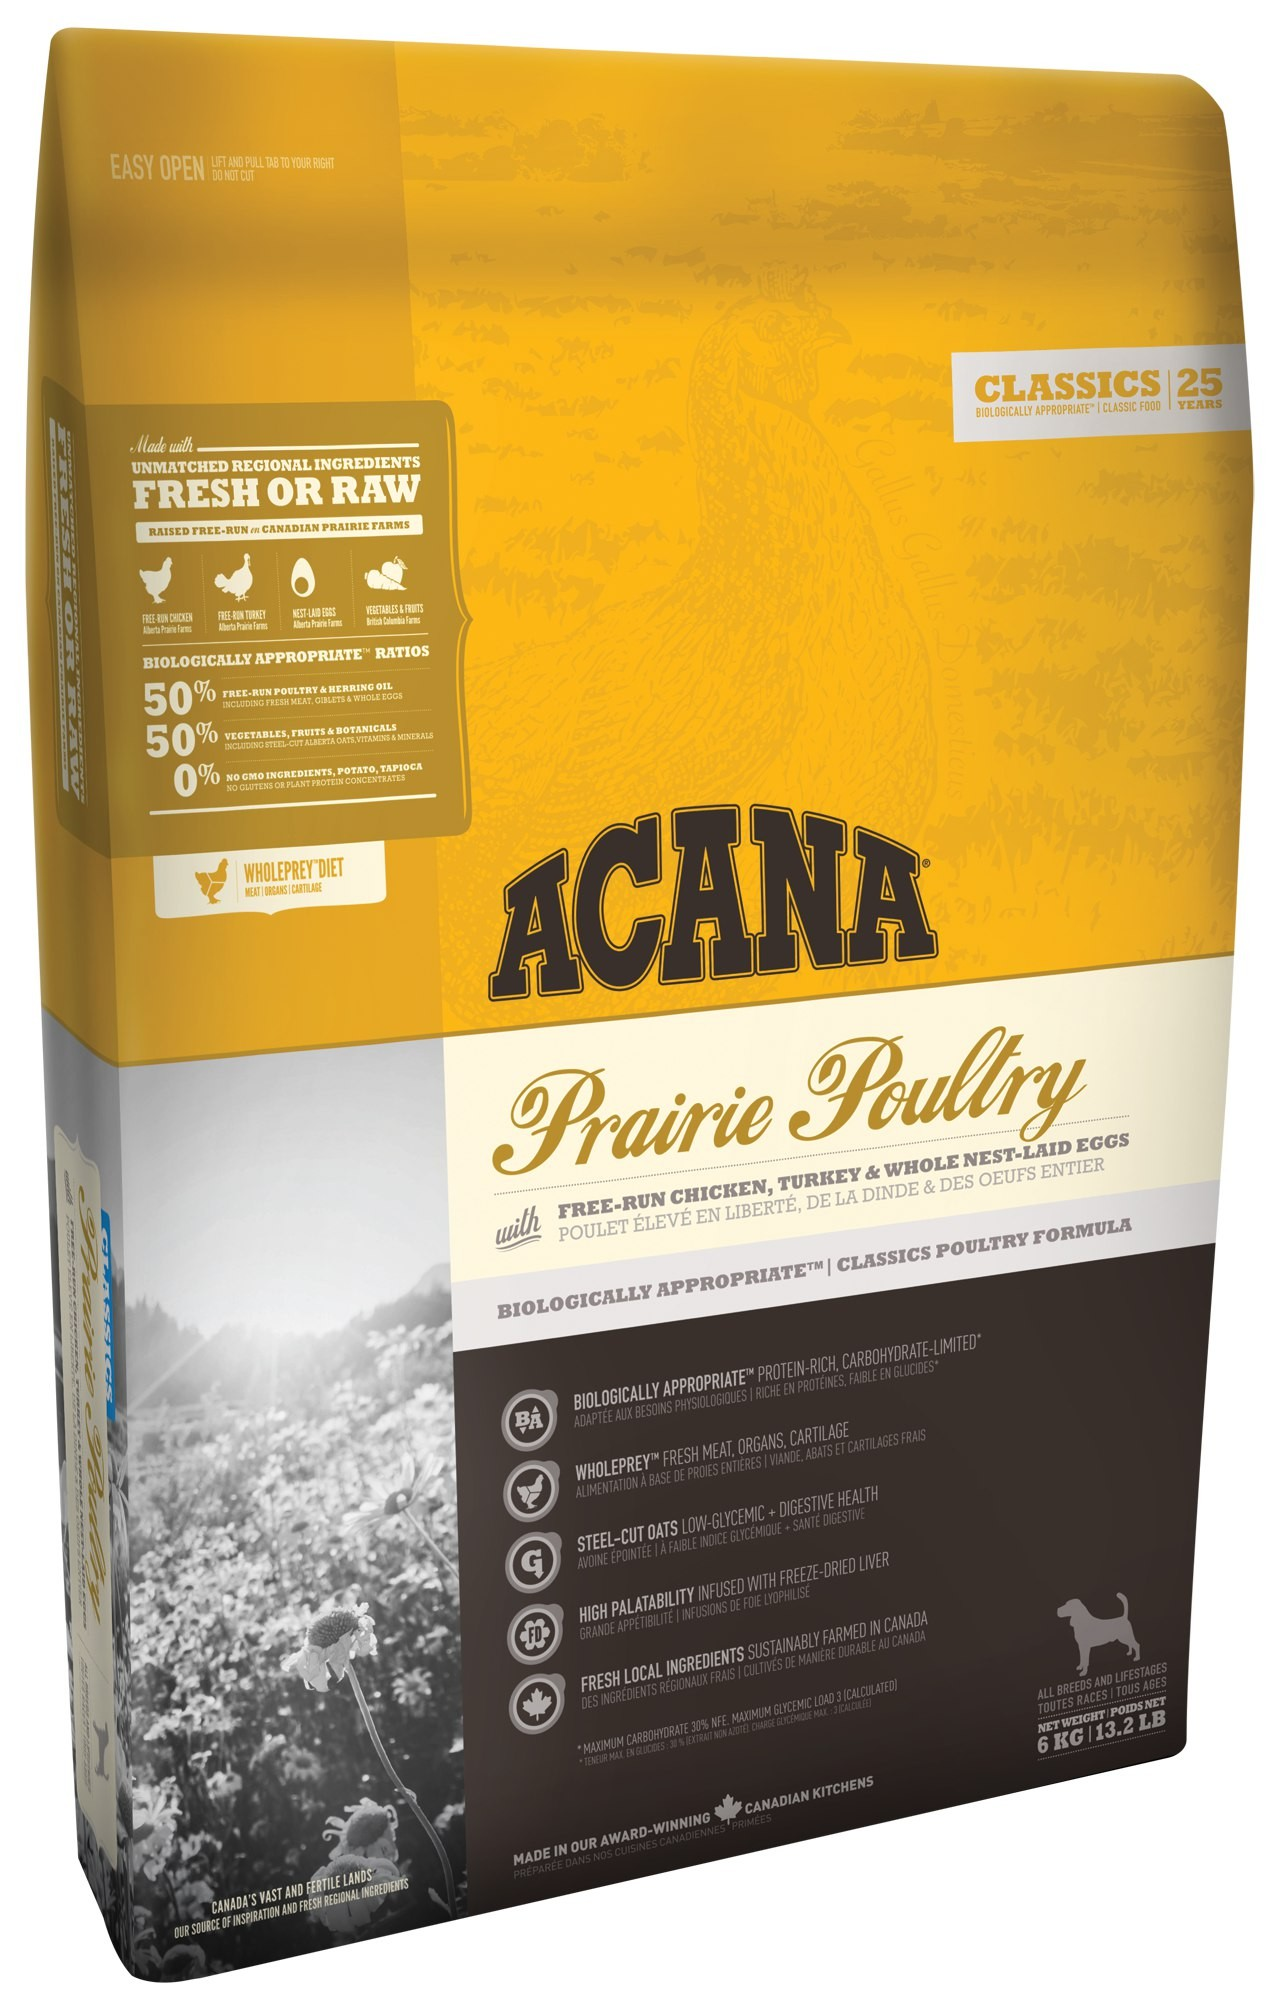 Acana Classics Poultry